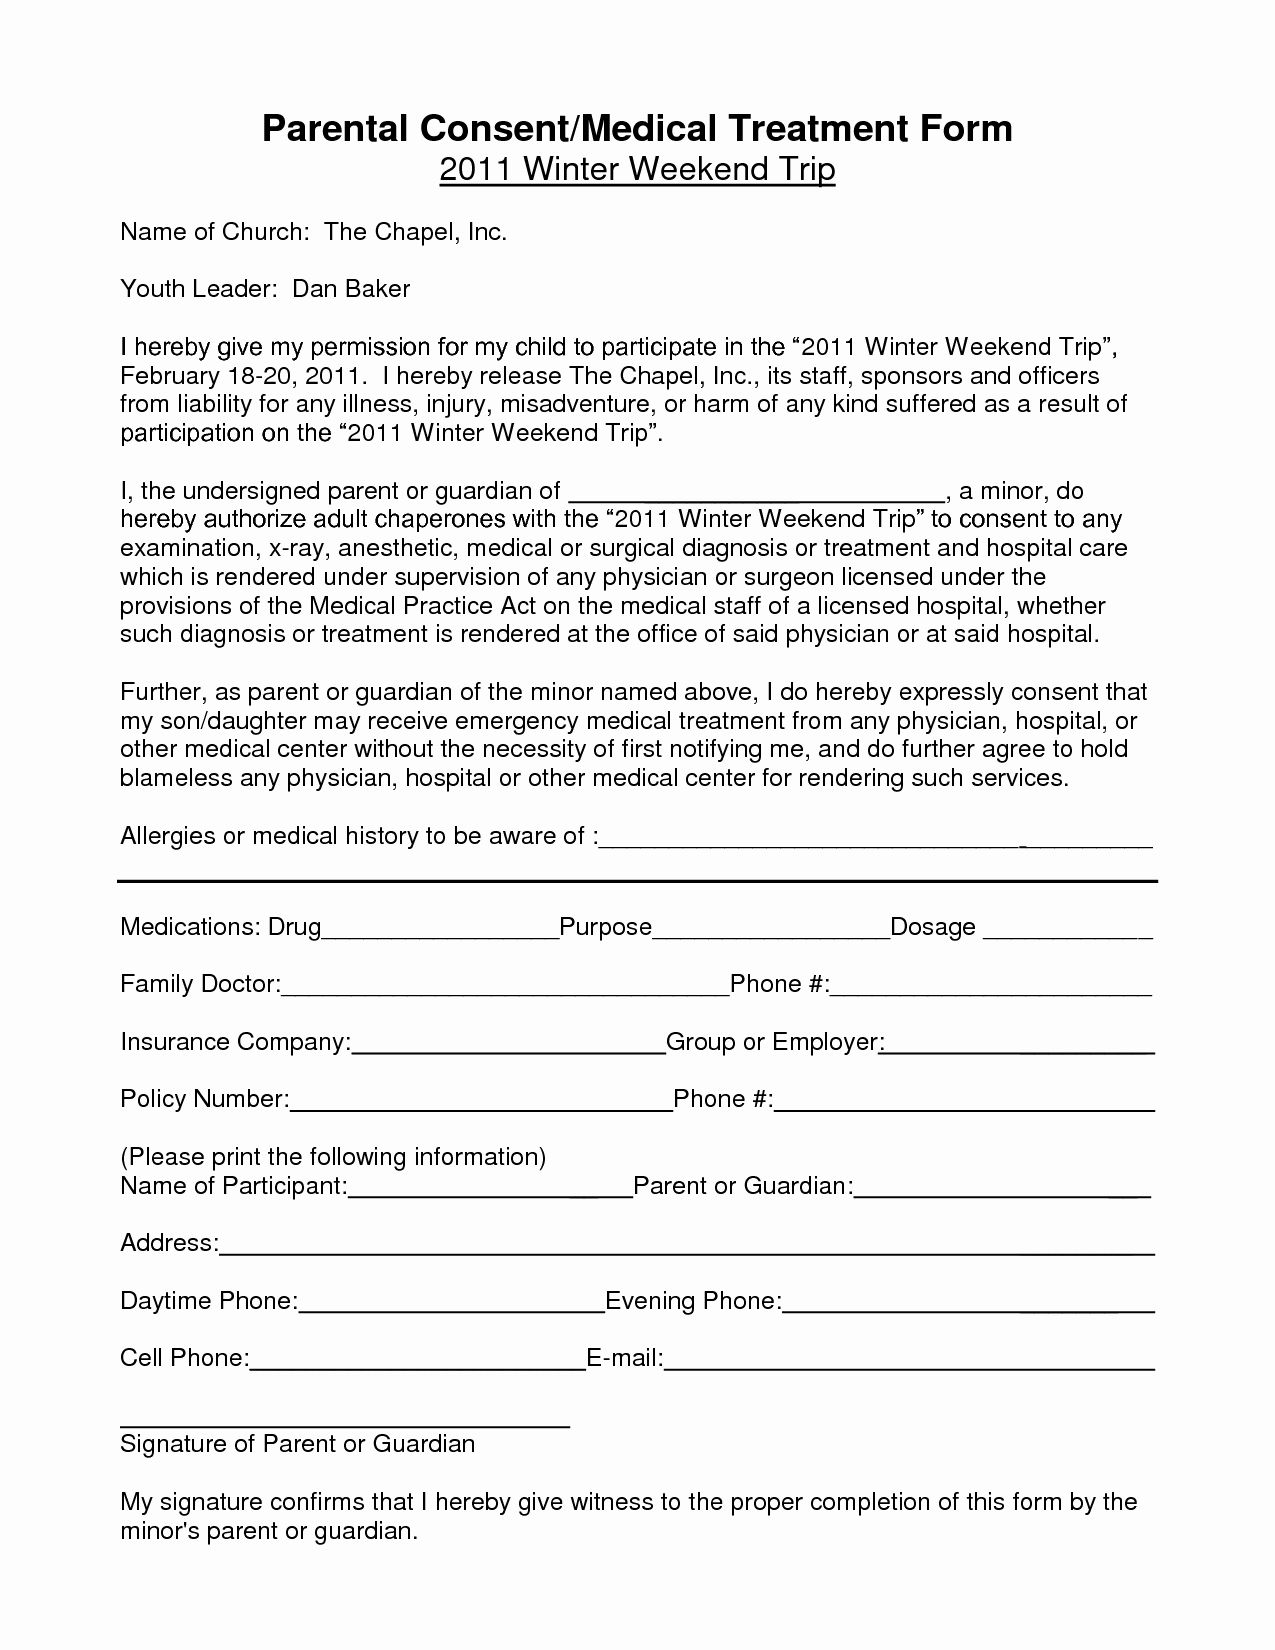 Letter Of Consent/ Medical Authorization Form from i.pinimg.com